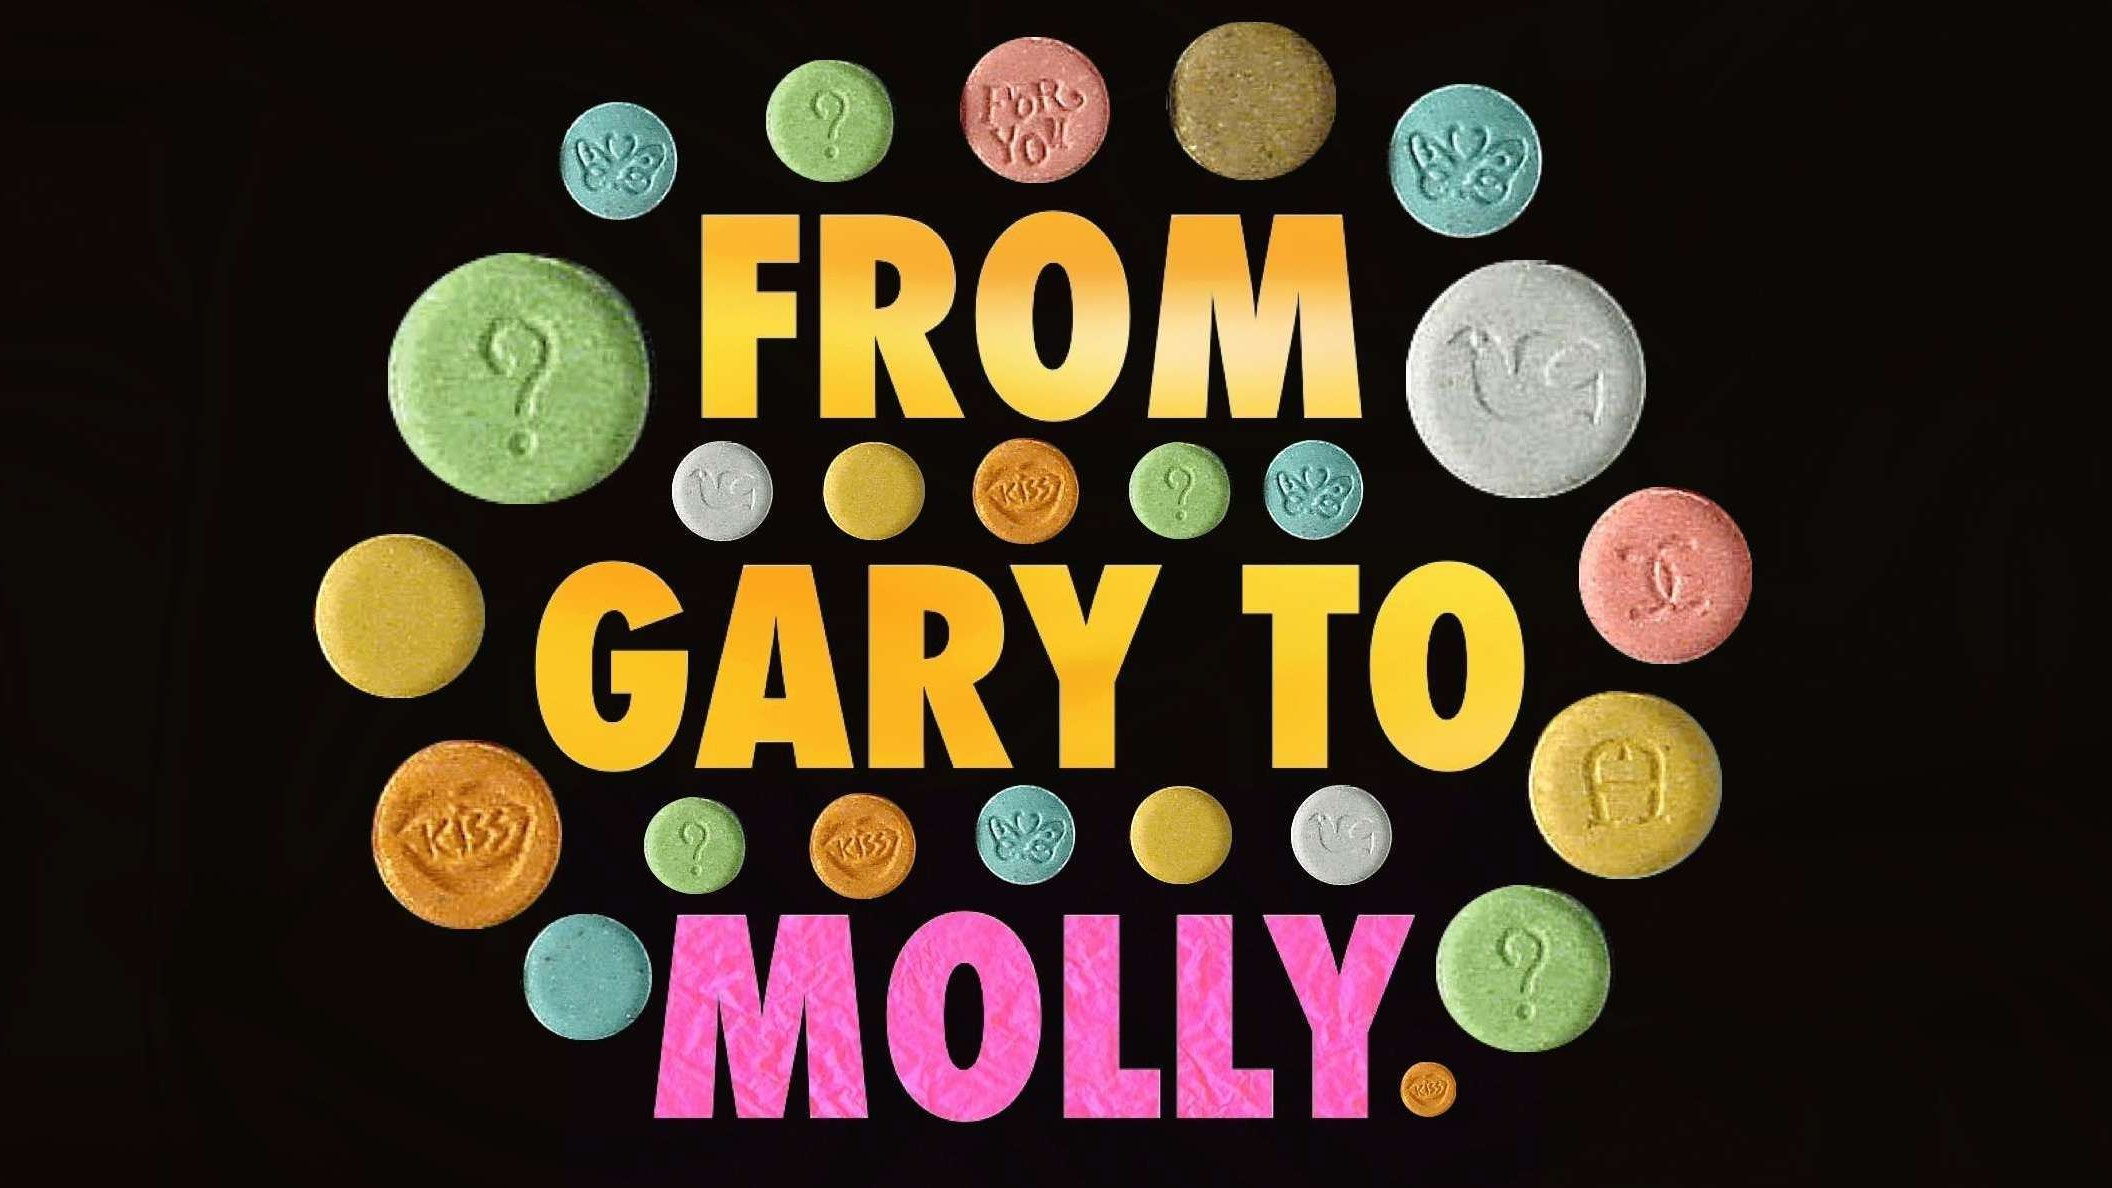 From Gary to Molly: The Feminisation of Ecstasy in Popular Culture